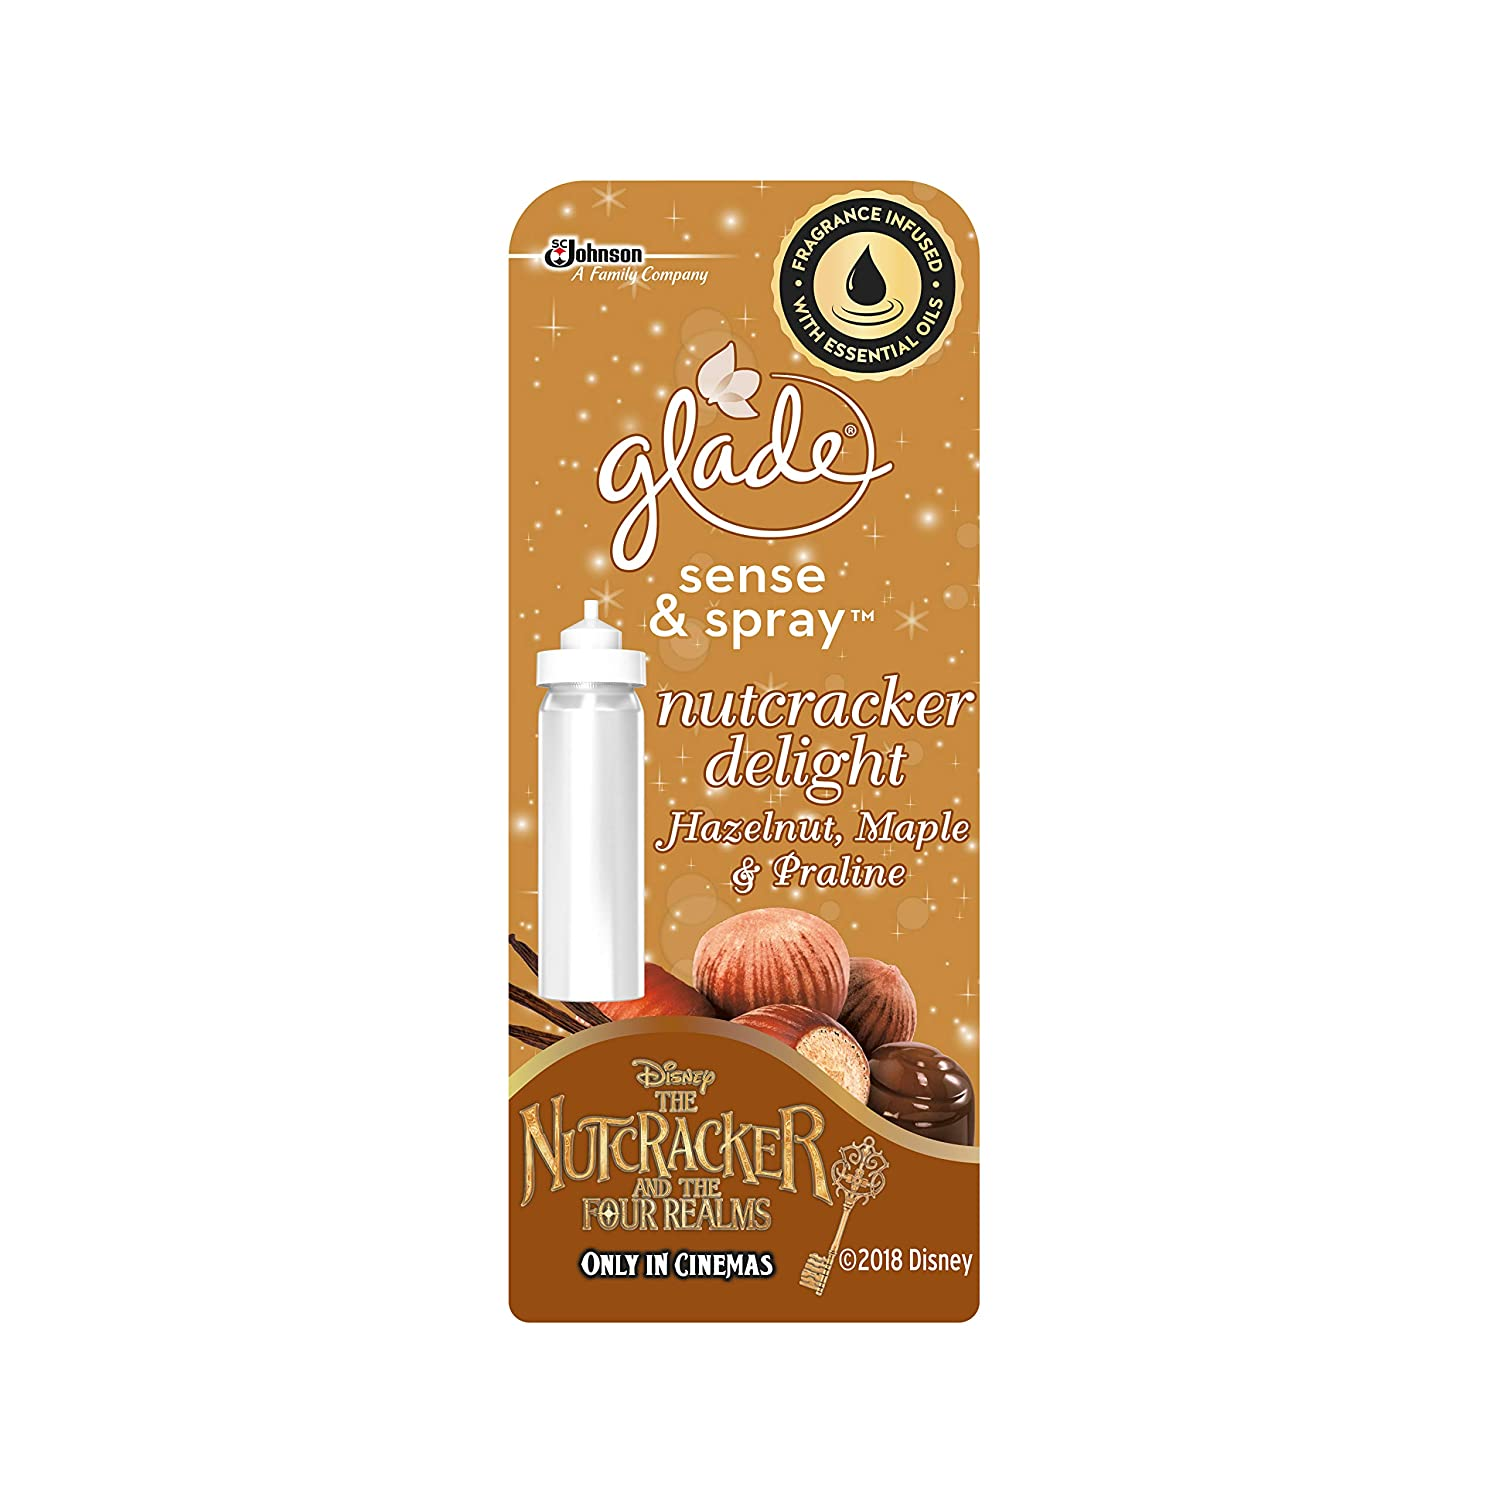 Glade Sense & Spray Air Freshener Refill, Automatic and Manual Diffusion with Starter Kit, 18 ml, Nutcracker Delight Fragrance 302807